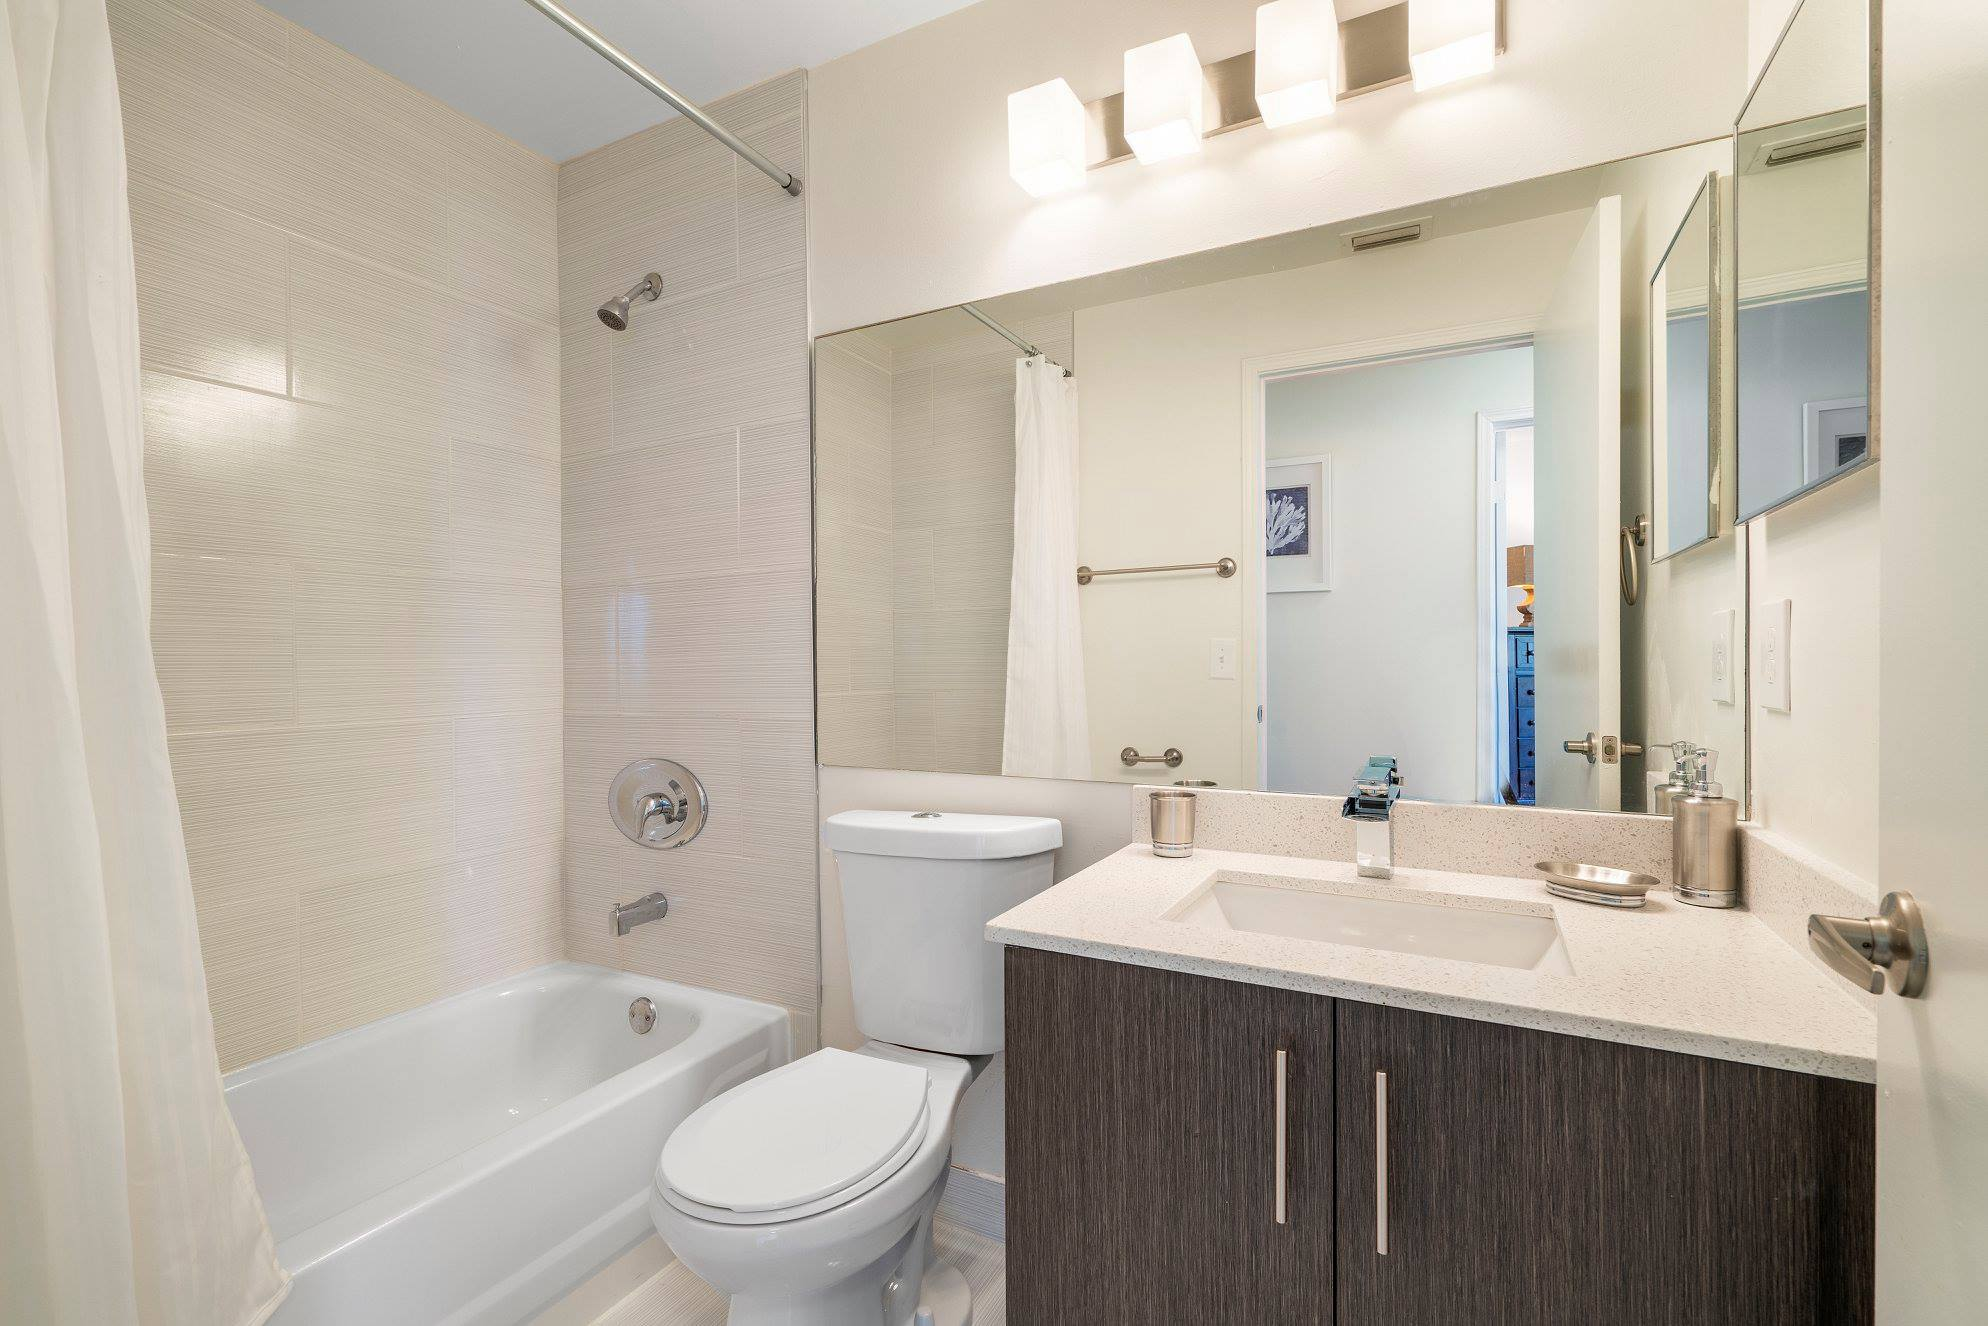 Shower and Tub Combination at Windsor Castle Apartments in Coral Springs, Florida